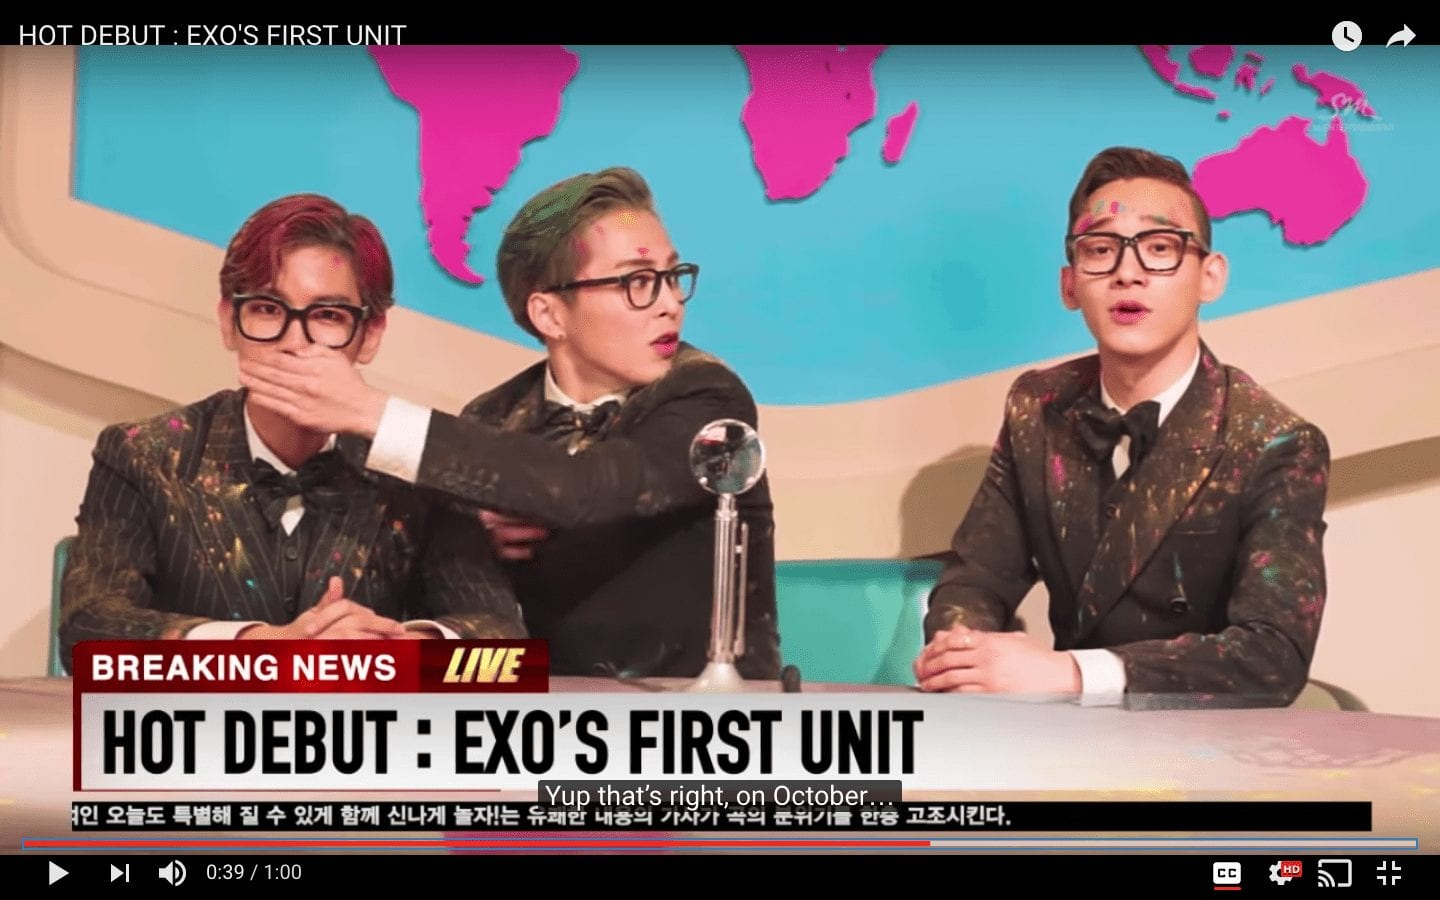 New Sub-Unit EXO-CBX Announced With Chen, Baekhyun, And Xiumin!